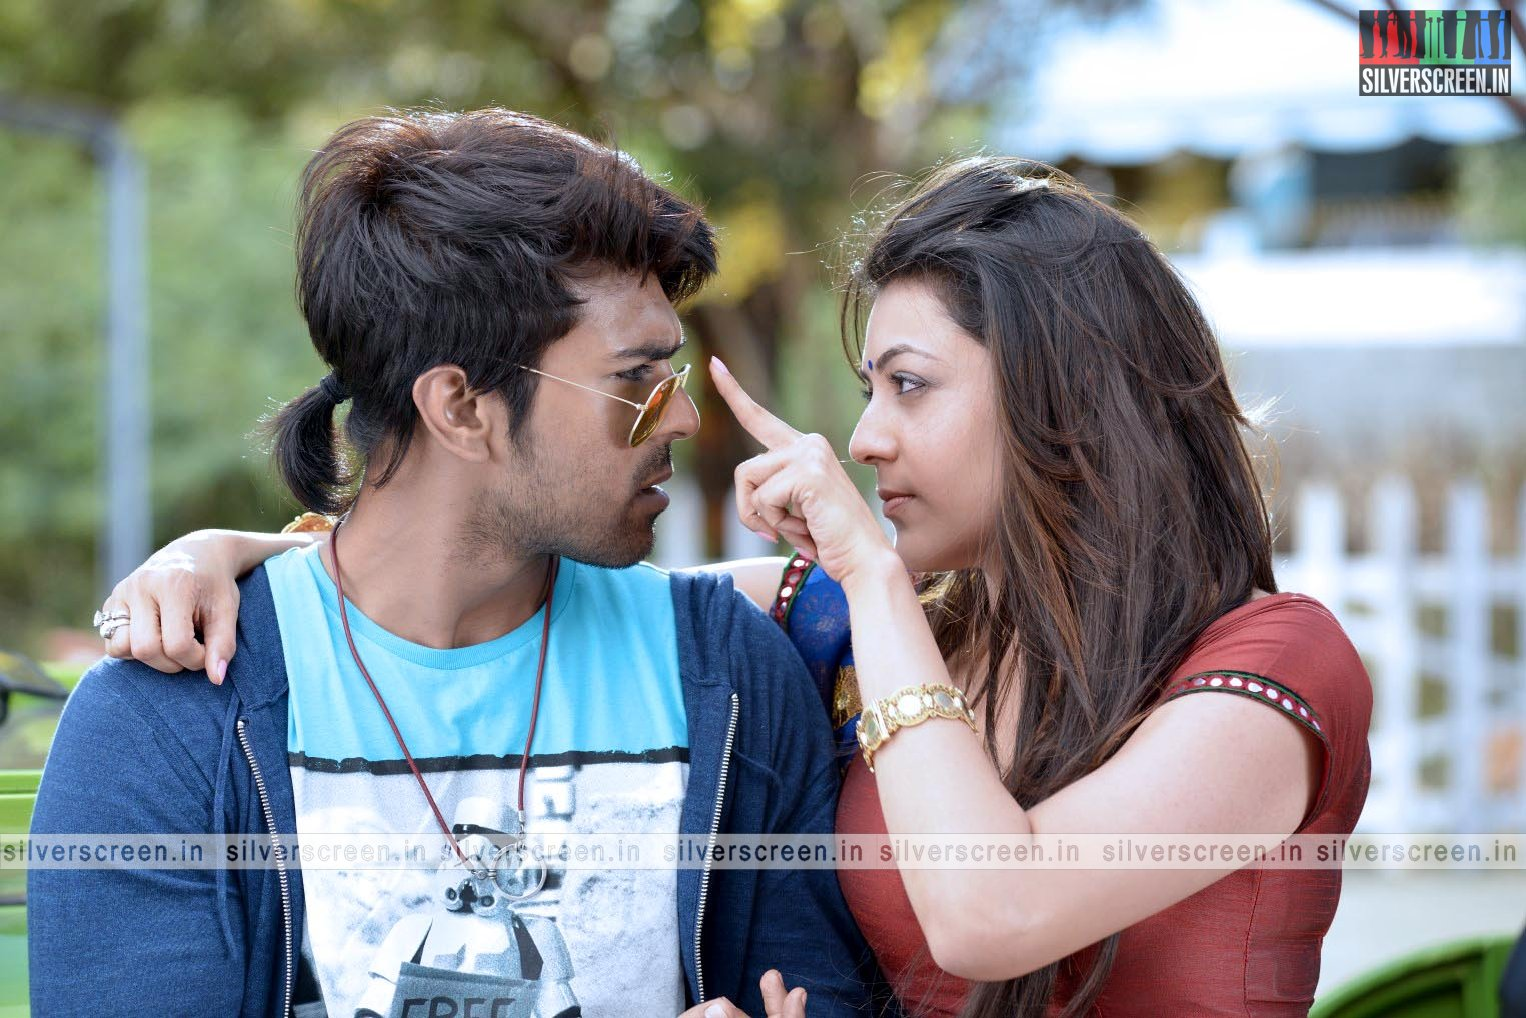 ramleela movie stills | silverscreen.in